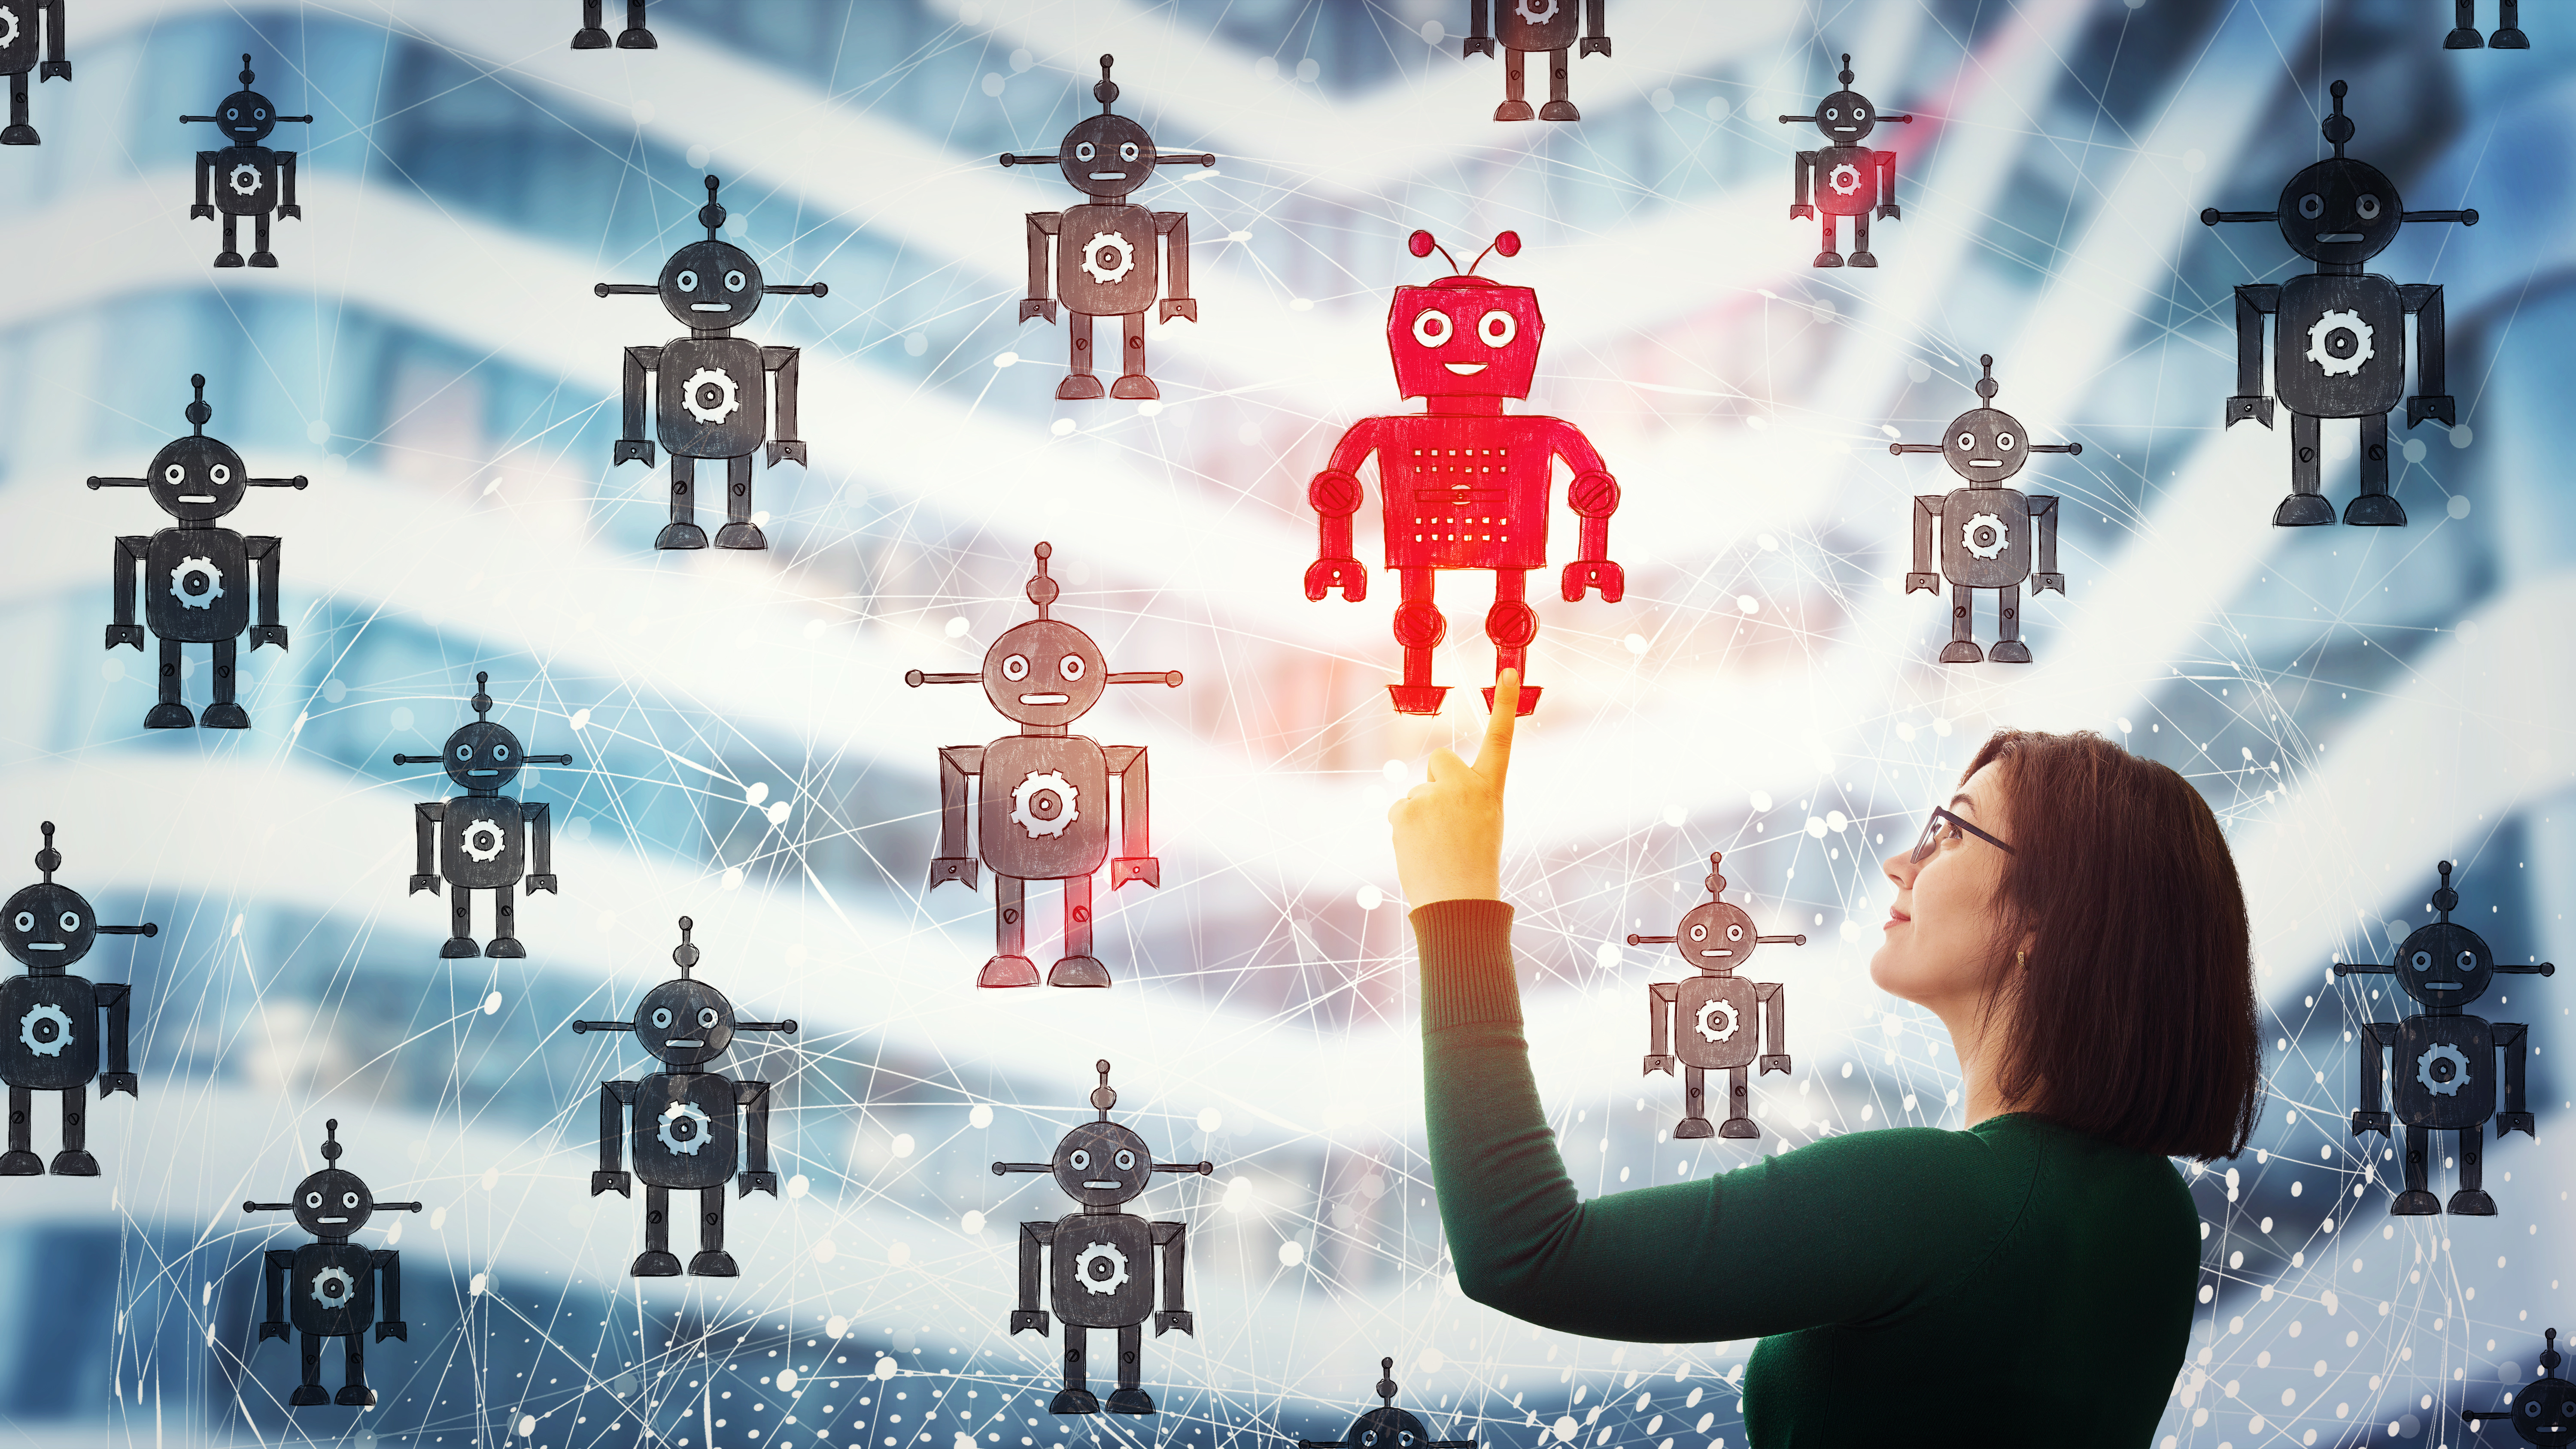 Automated workforce CloudFactory article